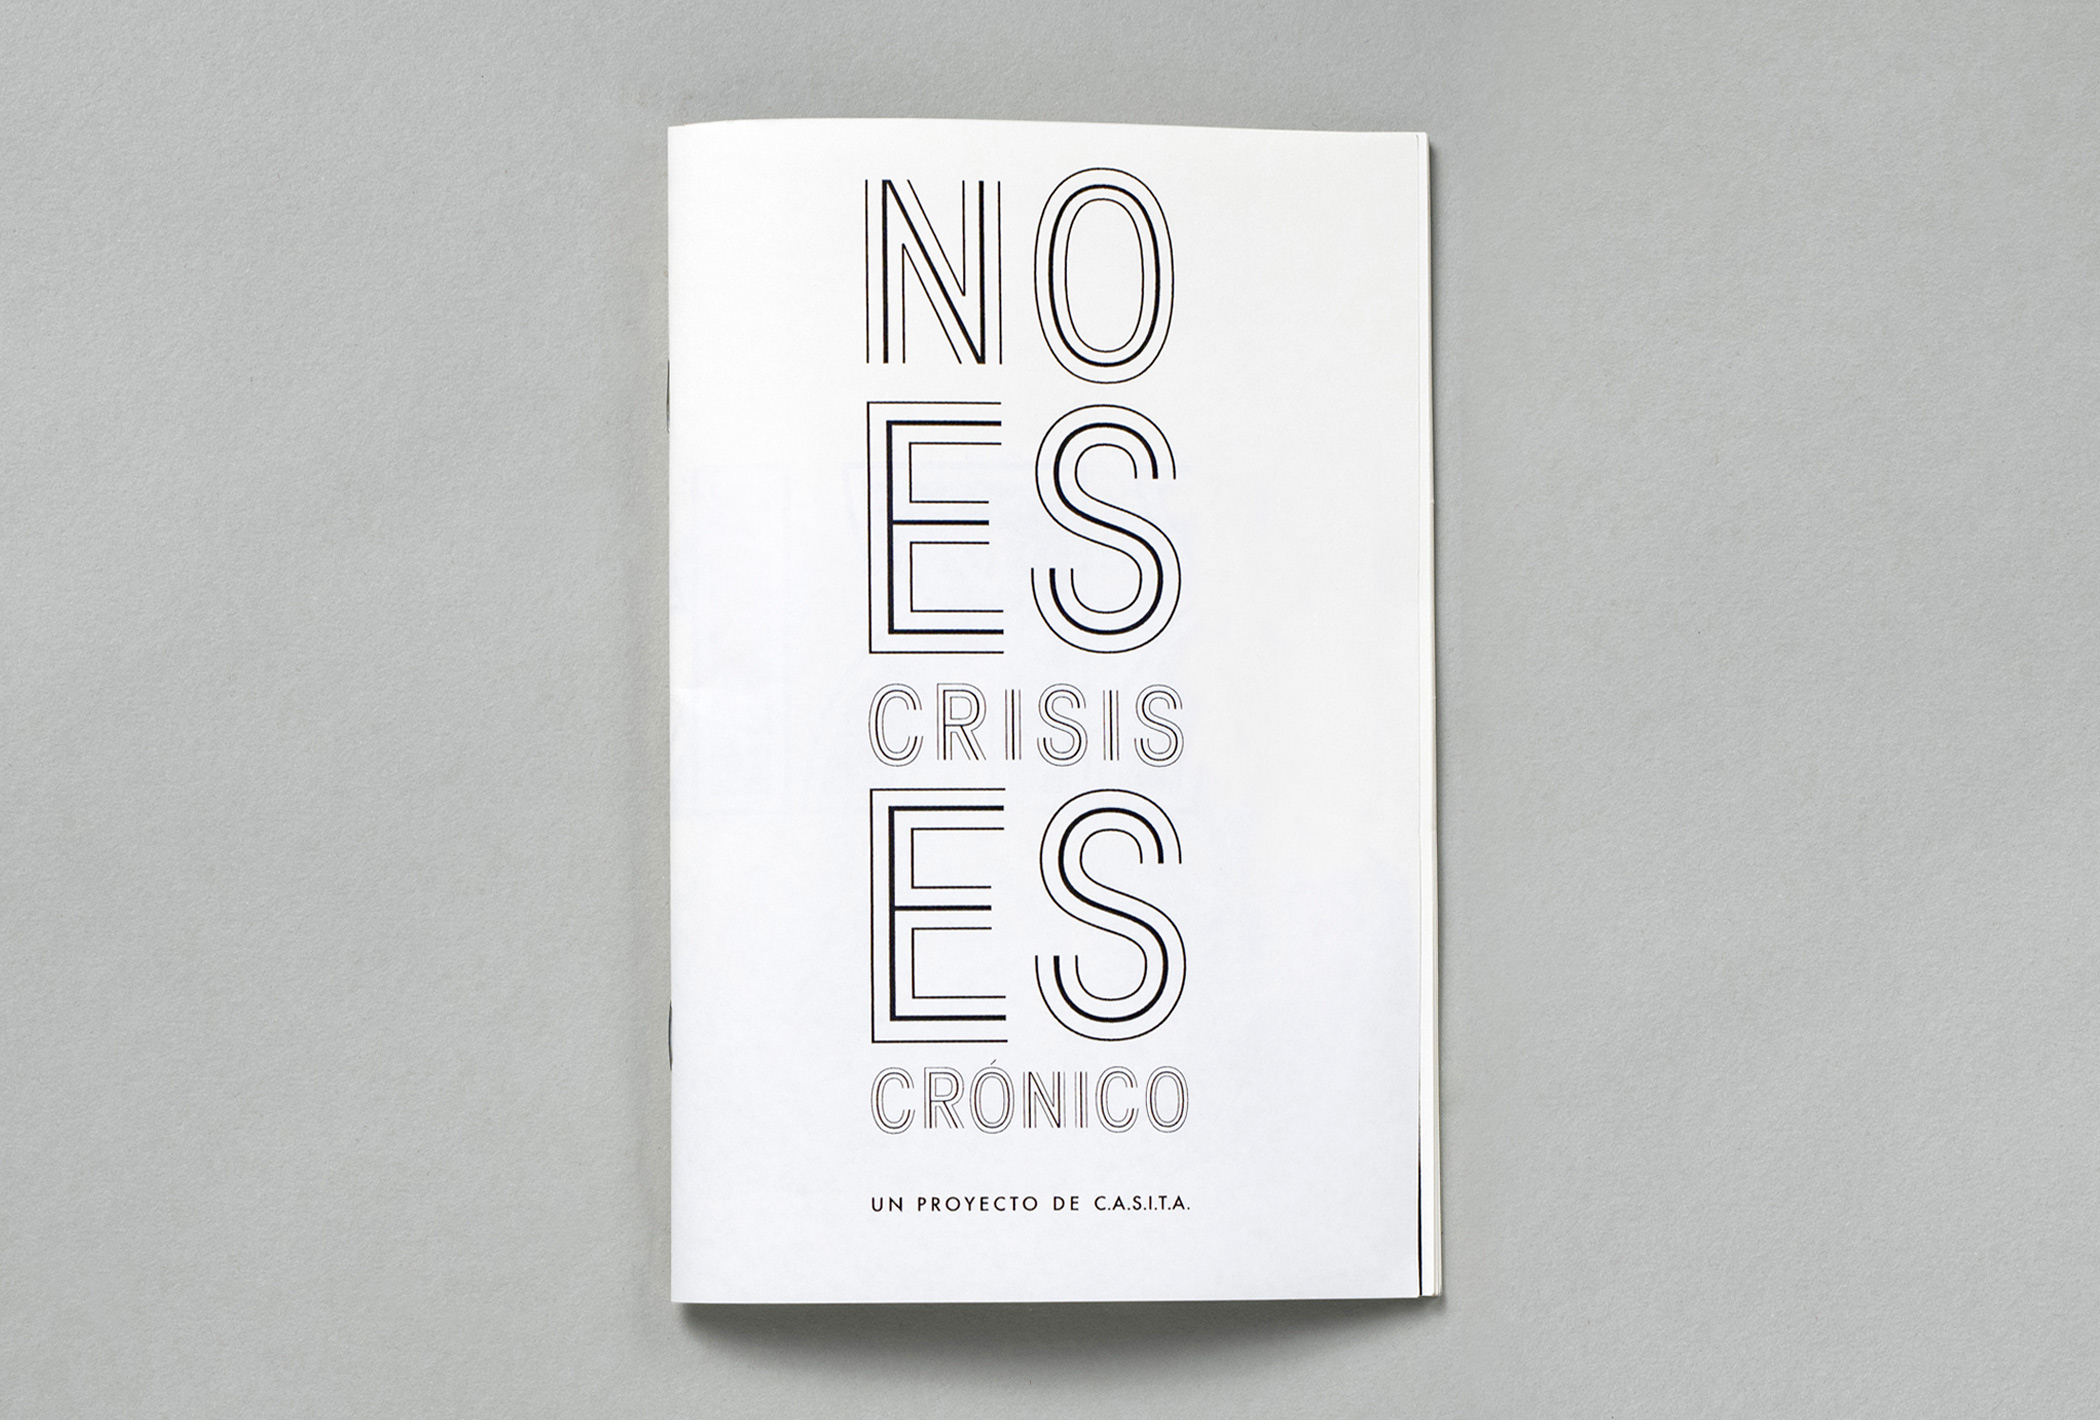 It is not a crisis, it is a chronic issue